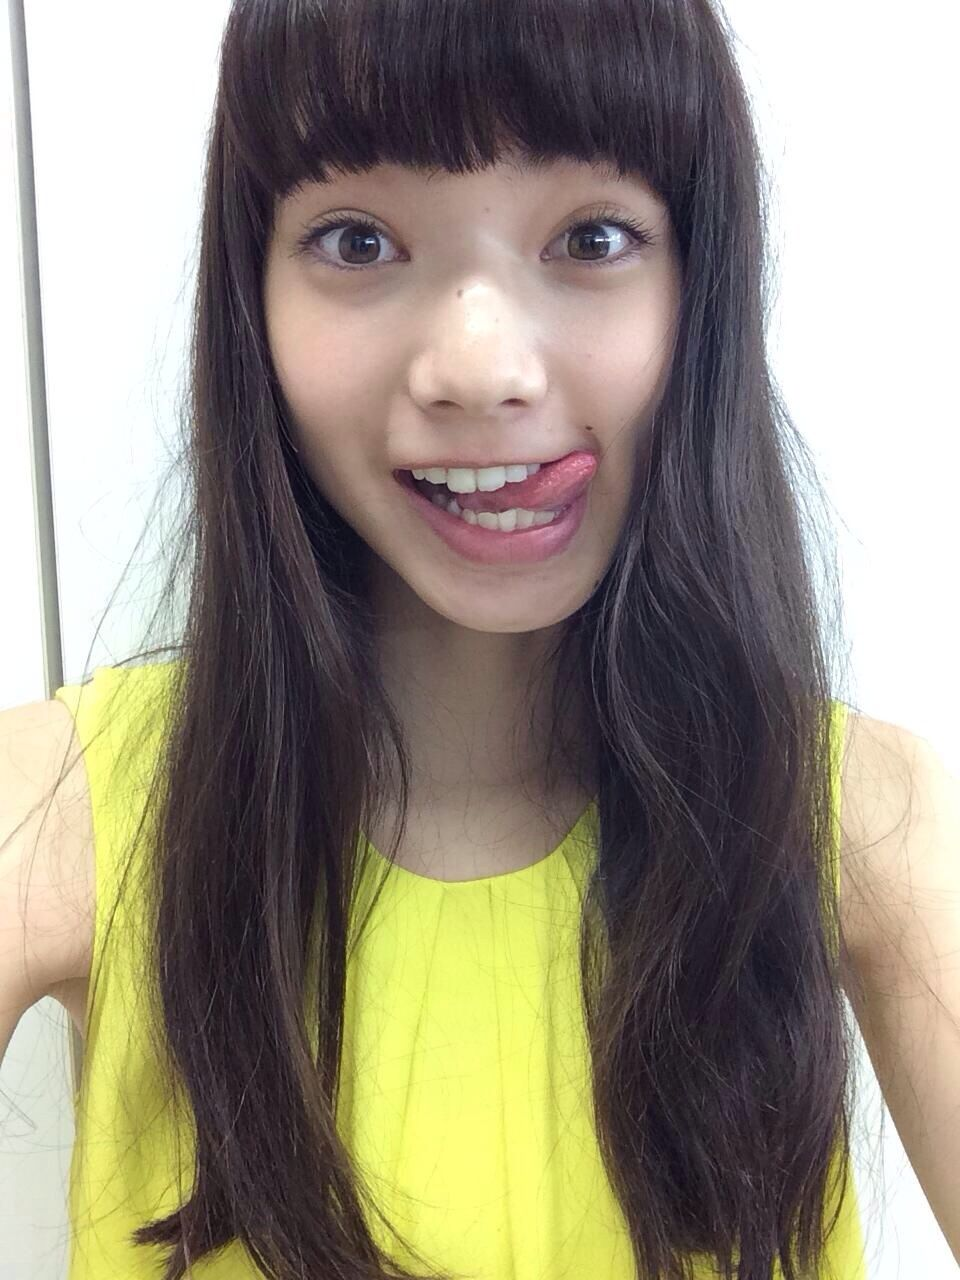 Pin by normalone on 小松菜奈 pinterest